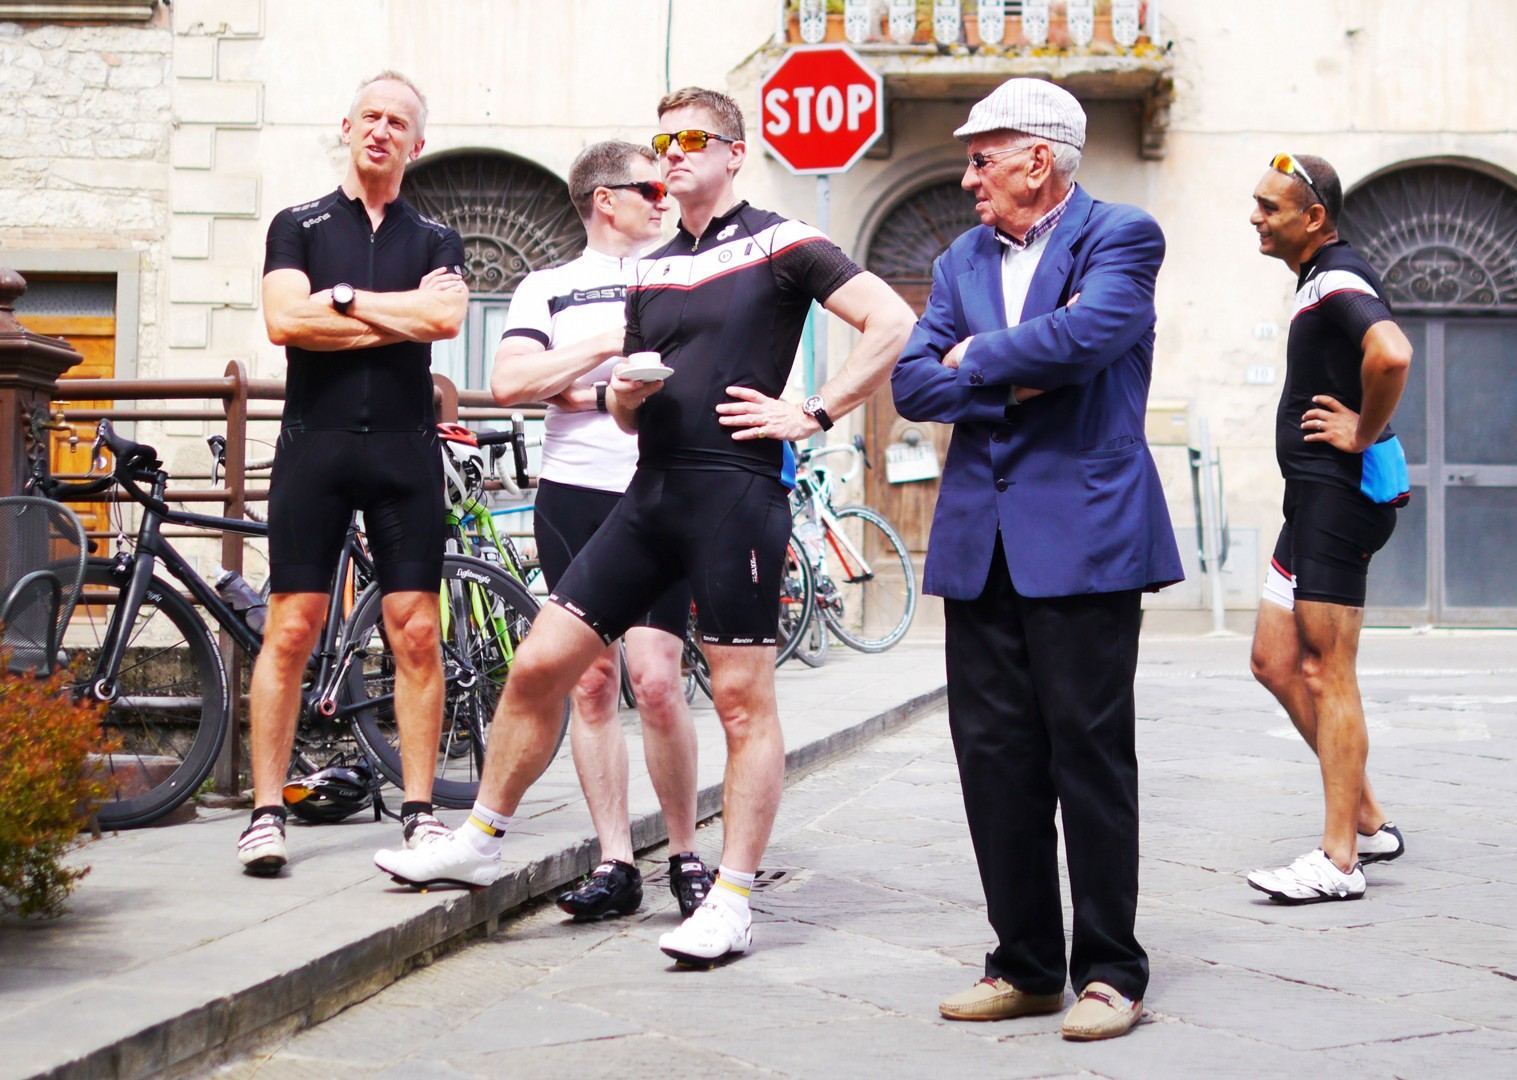 team-guided-cycling-holiday-tuscany-italy.jpg - Italy - Tuscany Tourer - Guided Road Cycling Holiday - Road Cycling